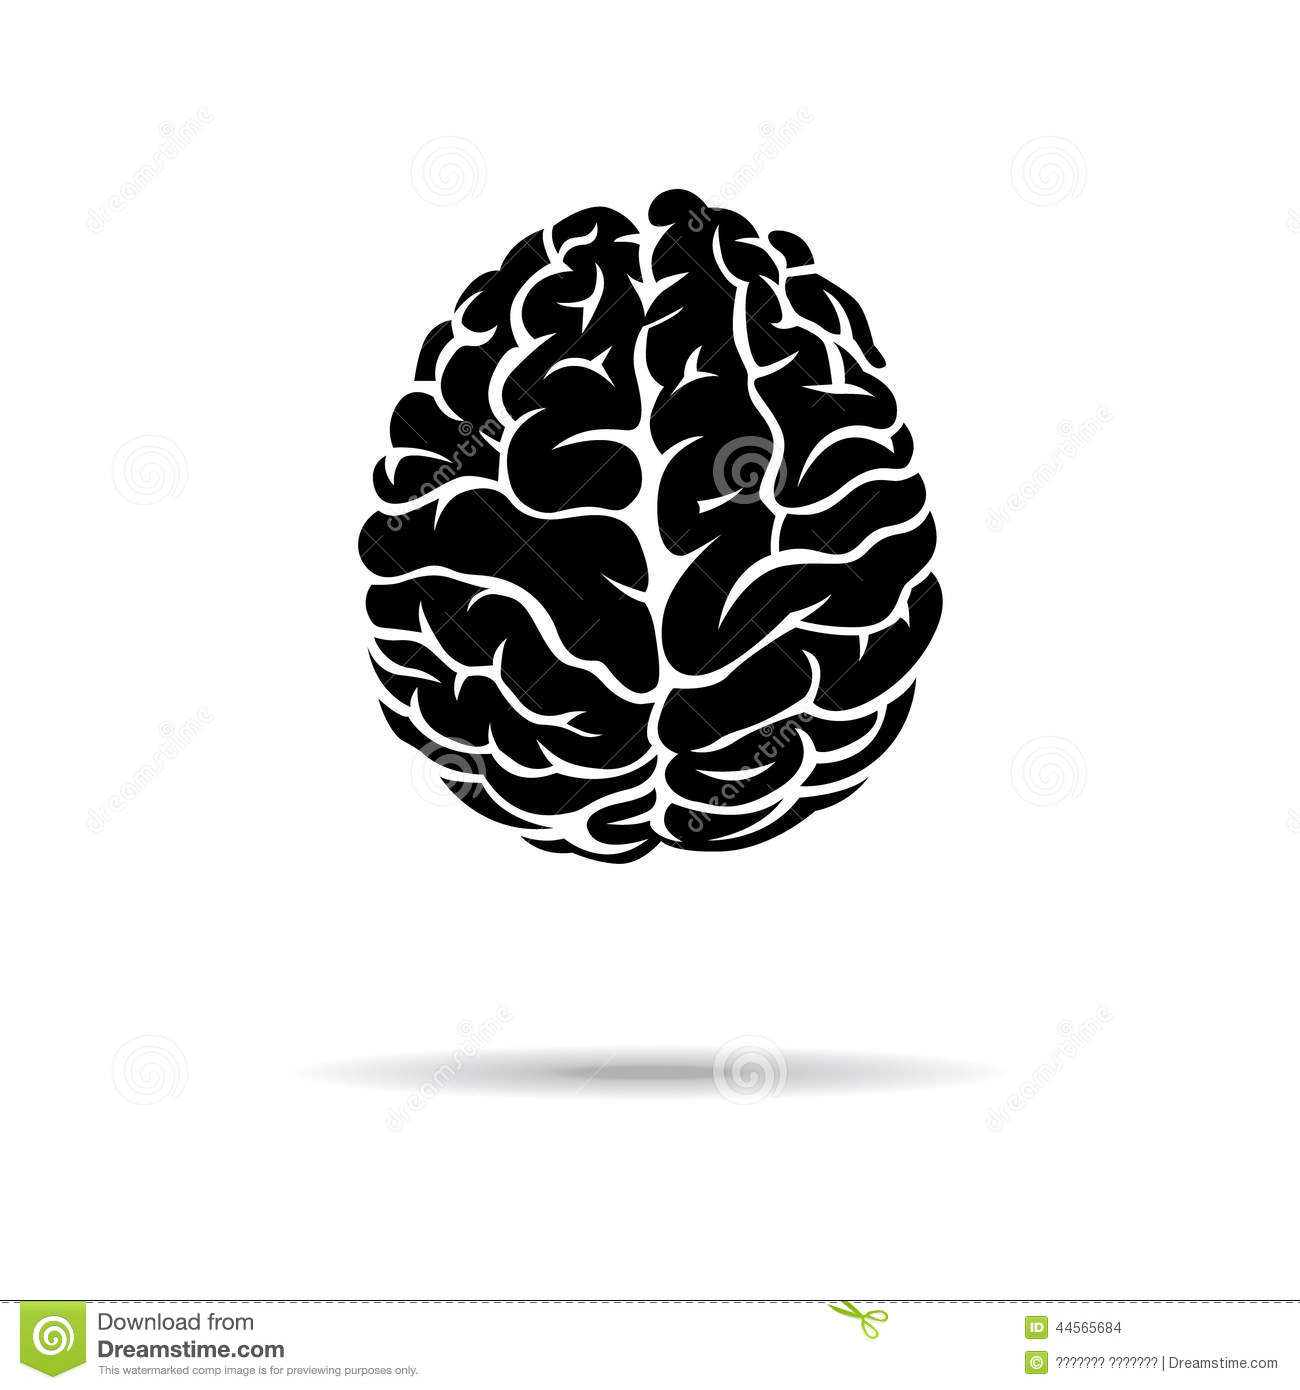 More similar stock images of ` Brain icon. On the white background ...